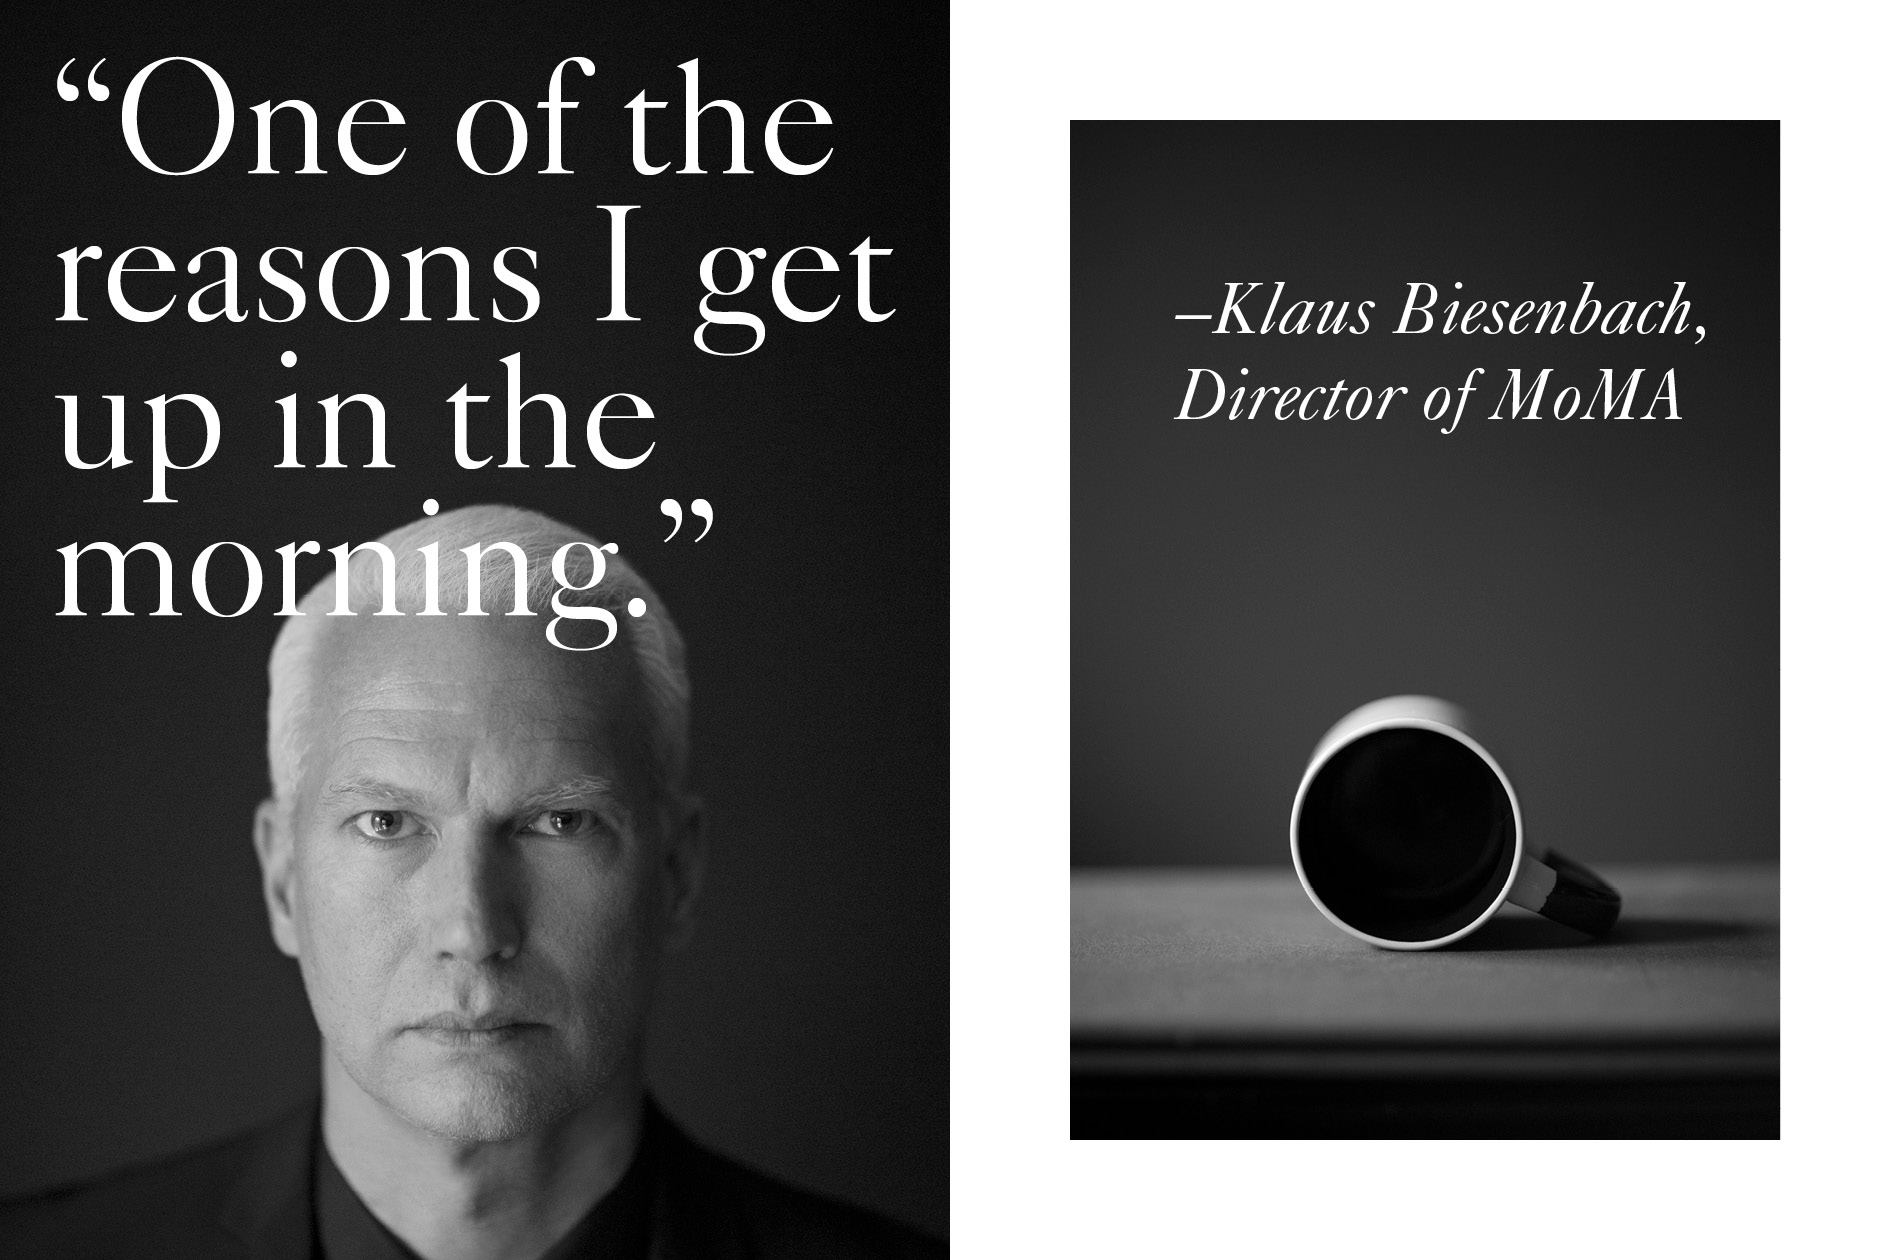 Klaus Biesenbach, the director of MoMA comments on the topic of beauty for Masthead Magazine by DTE.